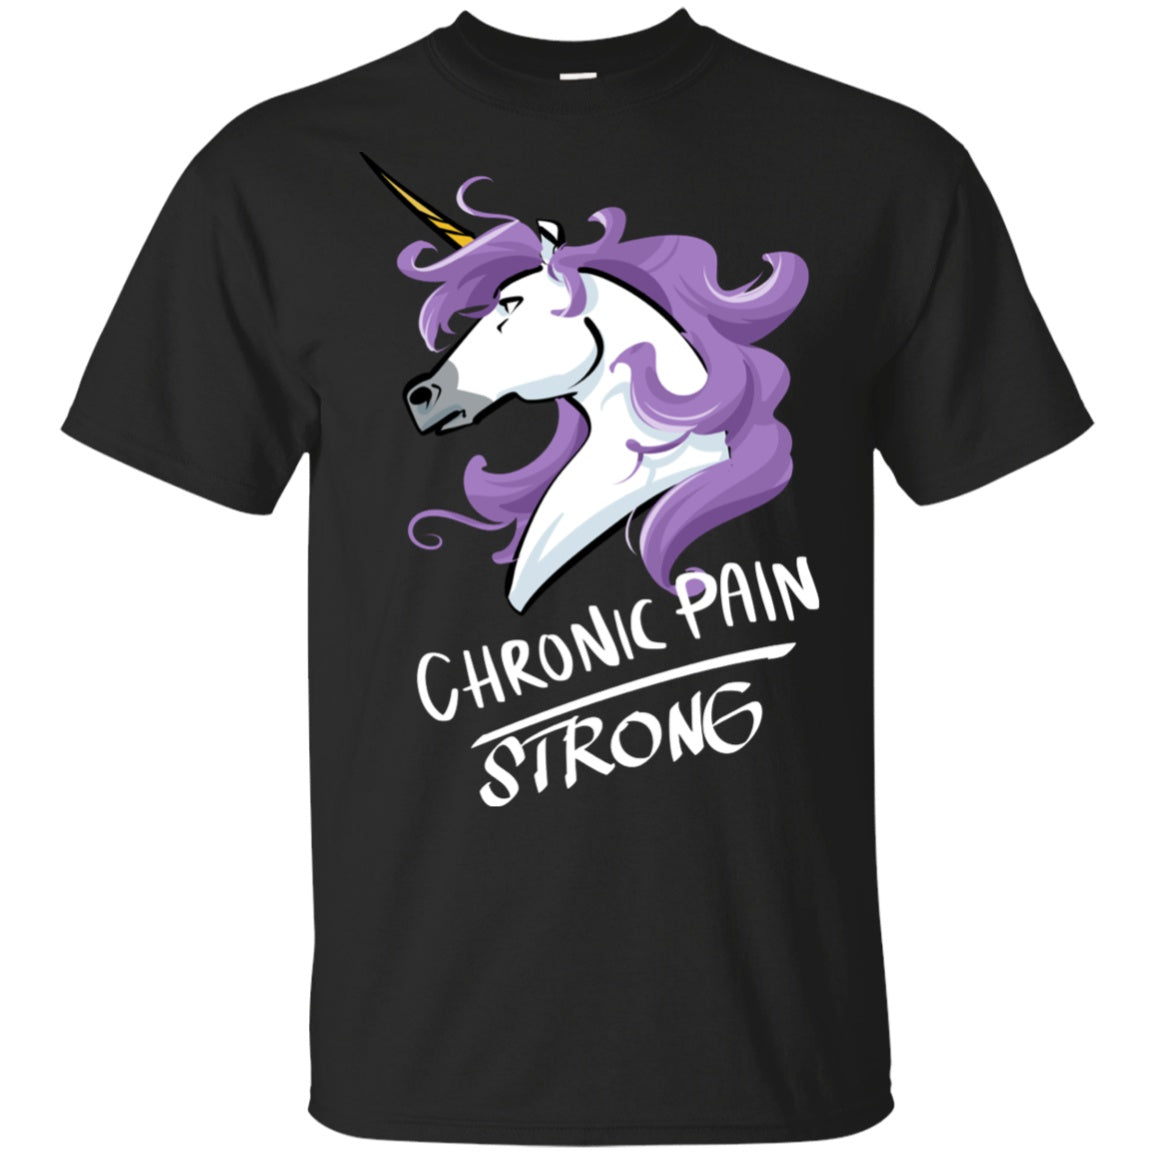 Chronic Pain Strong Unicorn Cotton Unisex T-Shirt - The Unchargeables